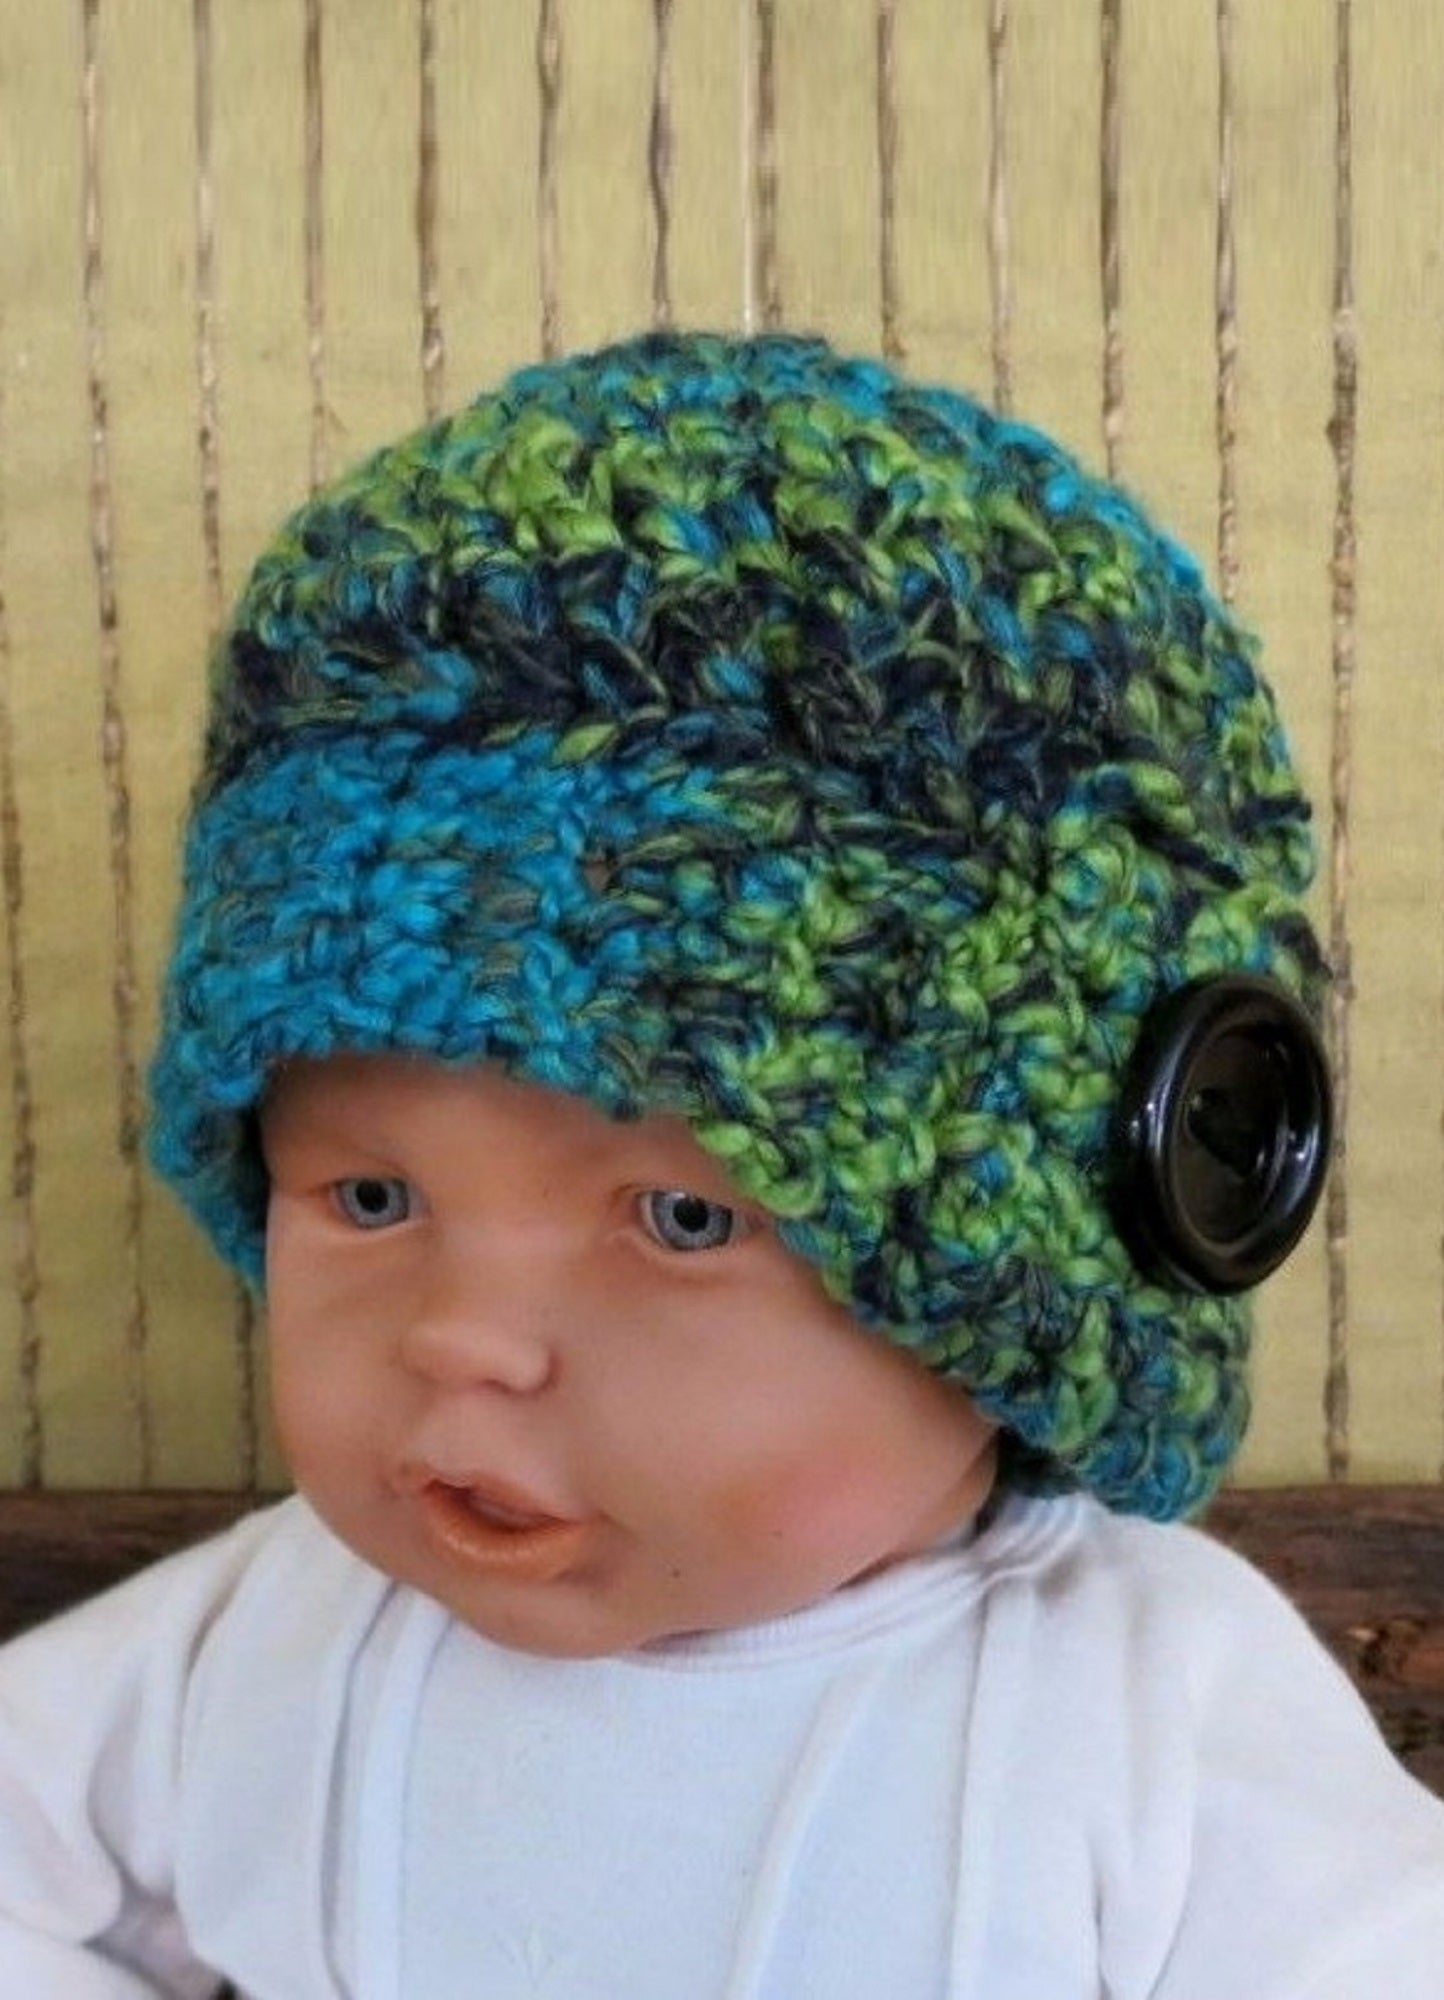 Children's-Crochet-Bucket-Hat-Nchanted-Gifts